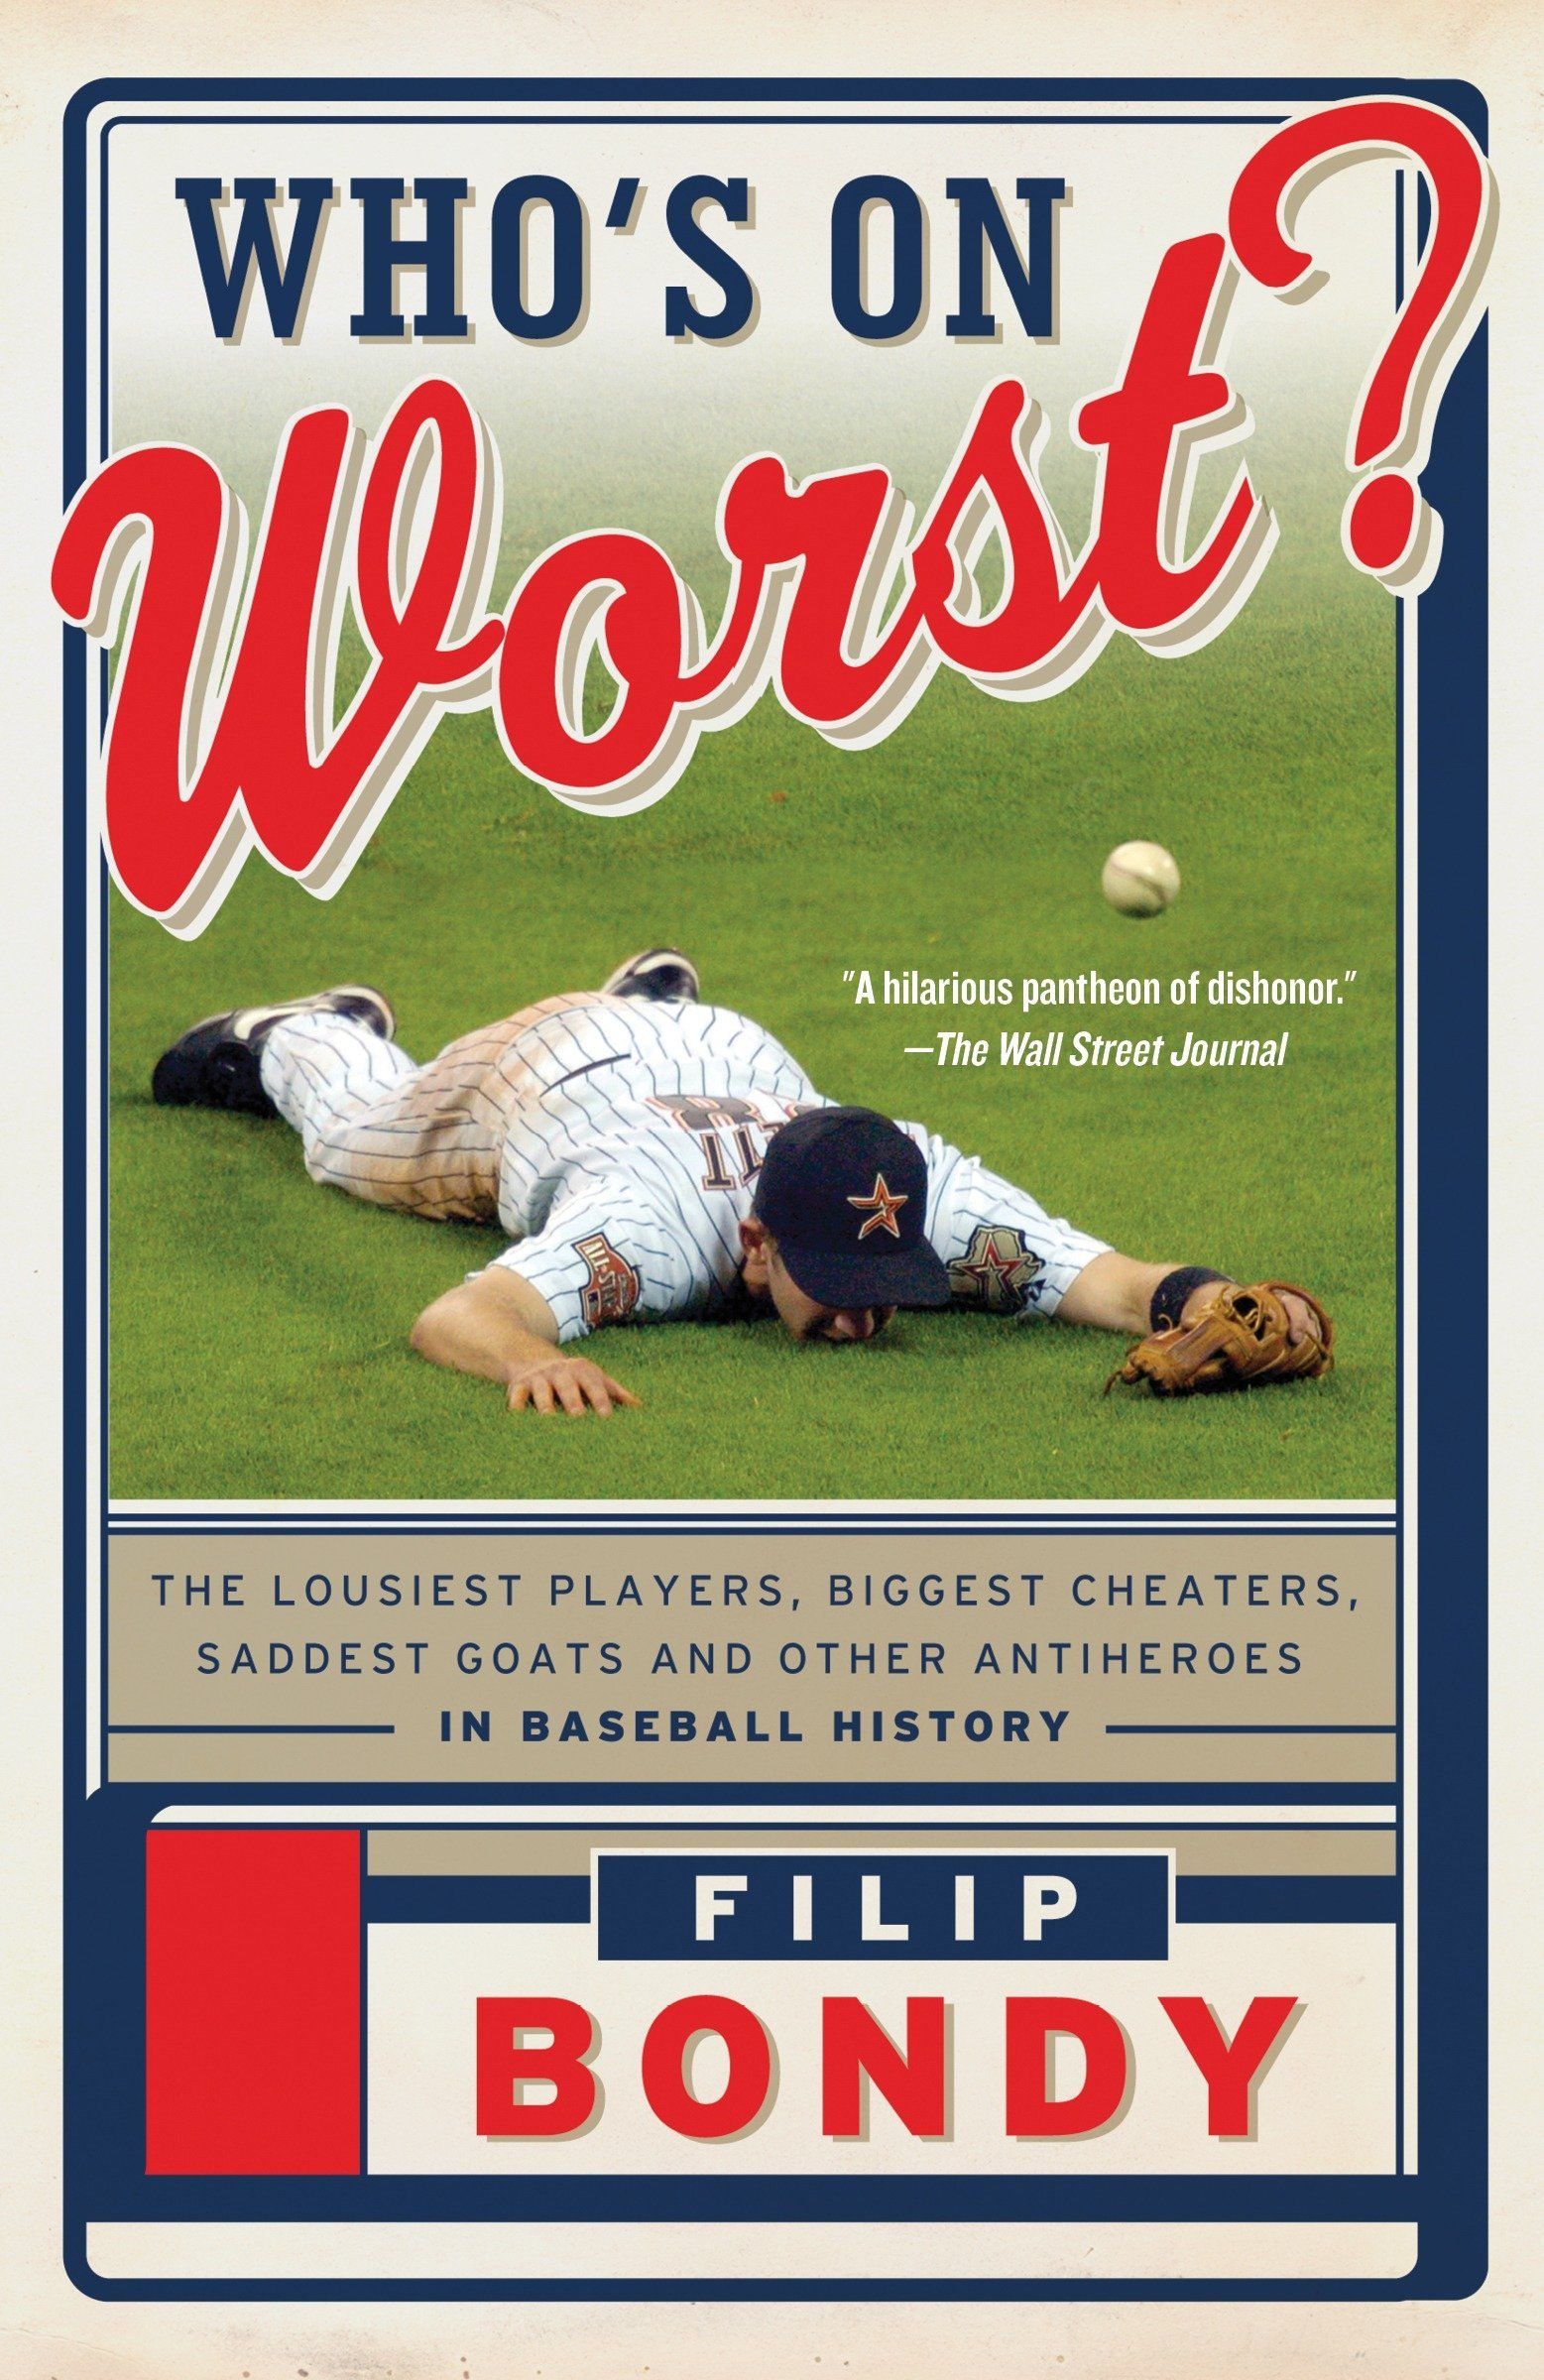 Download Who's on Worst?: The Lousiest Players, Biggest Cheaters, Saddest Goats and Other Antiheroes in Baseball History ebook